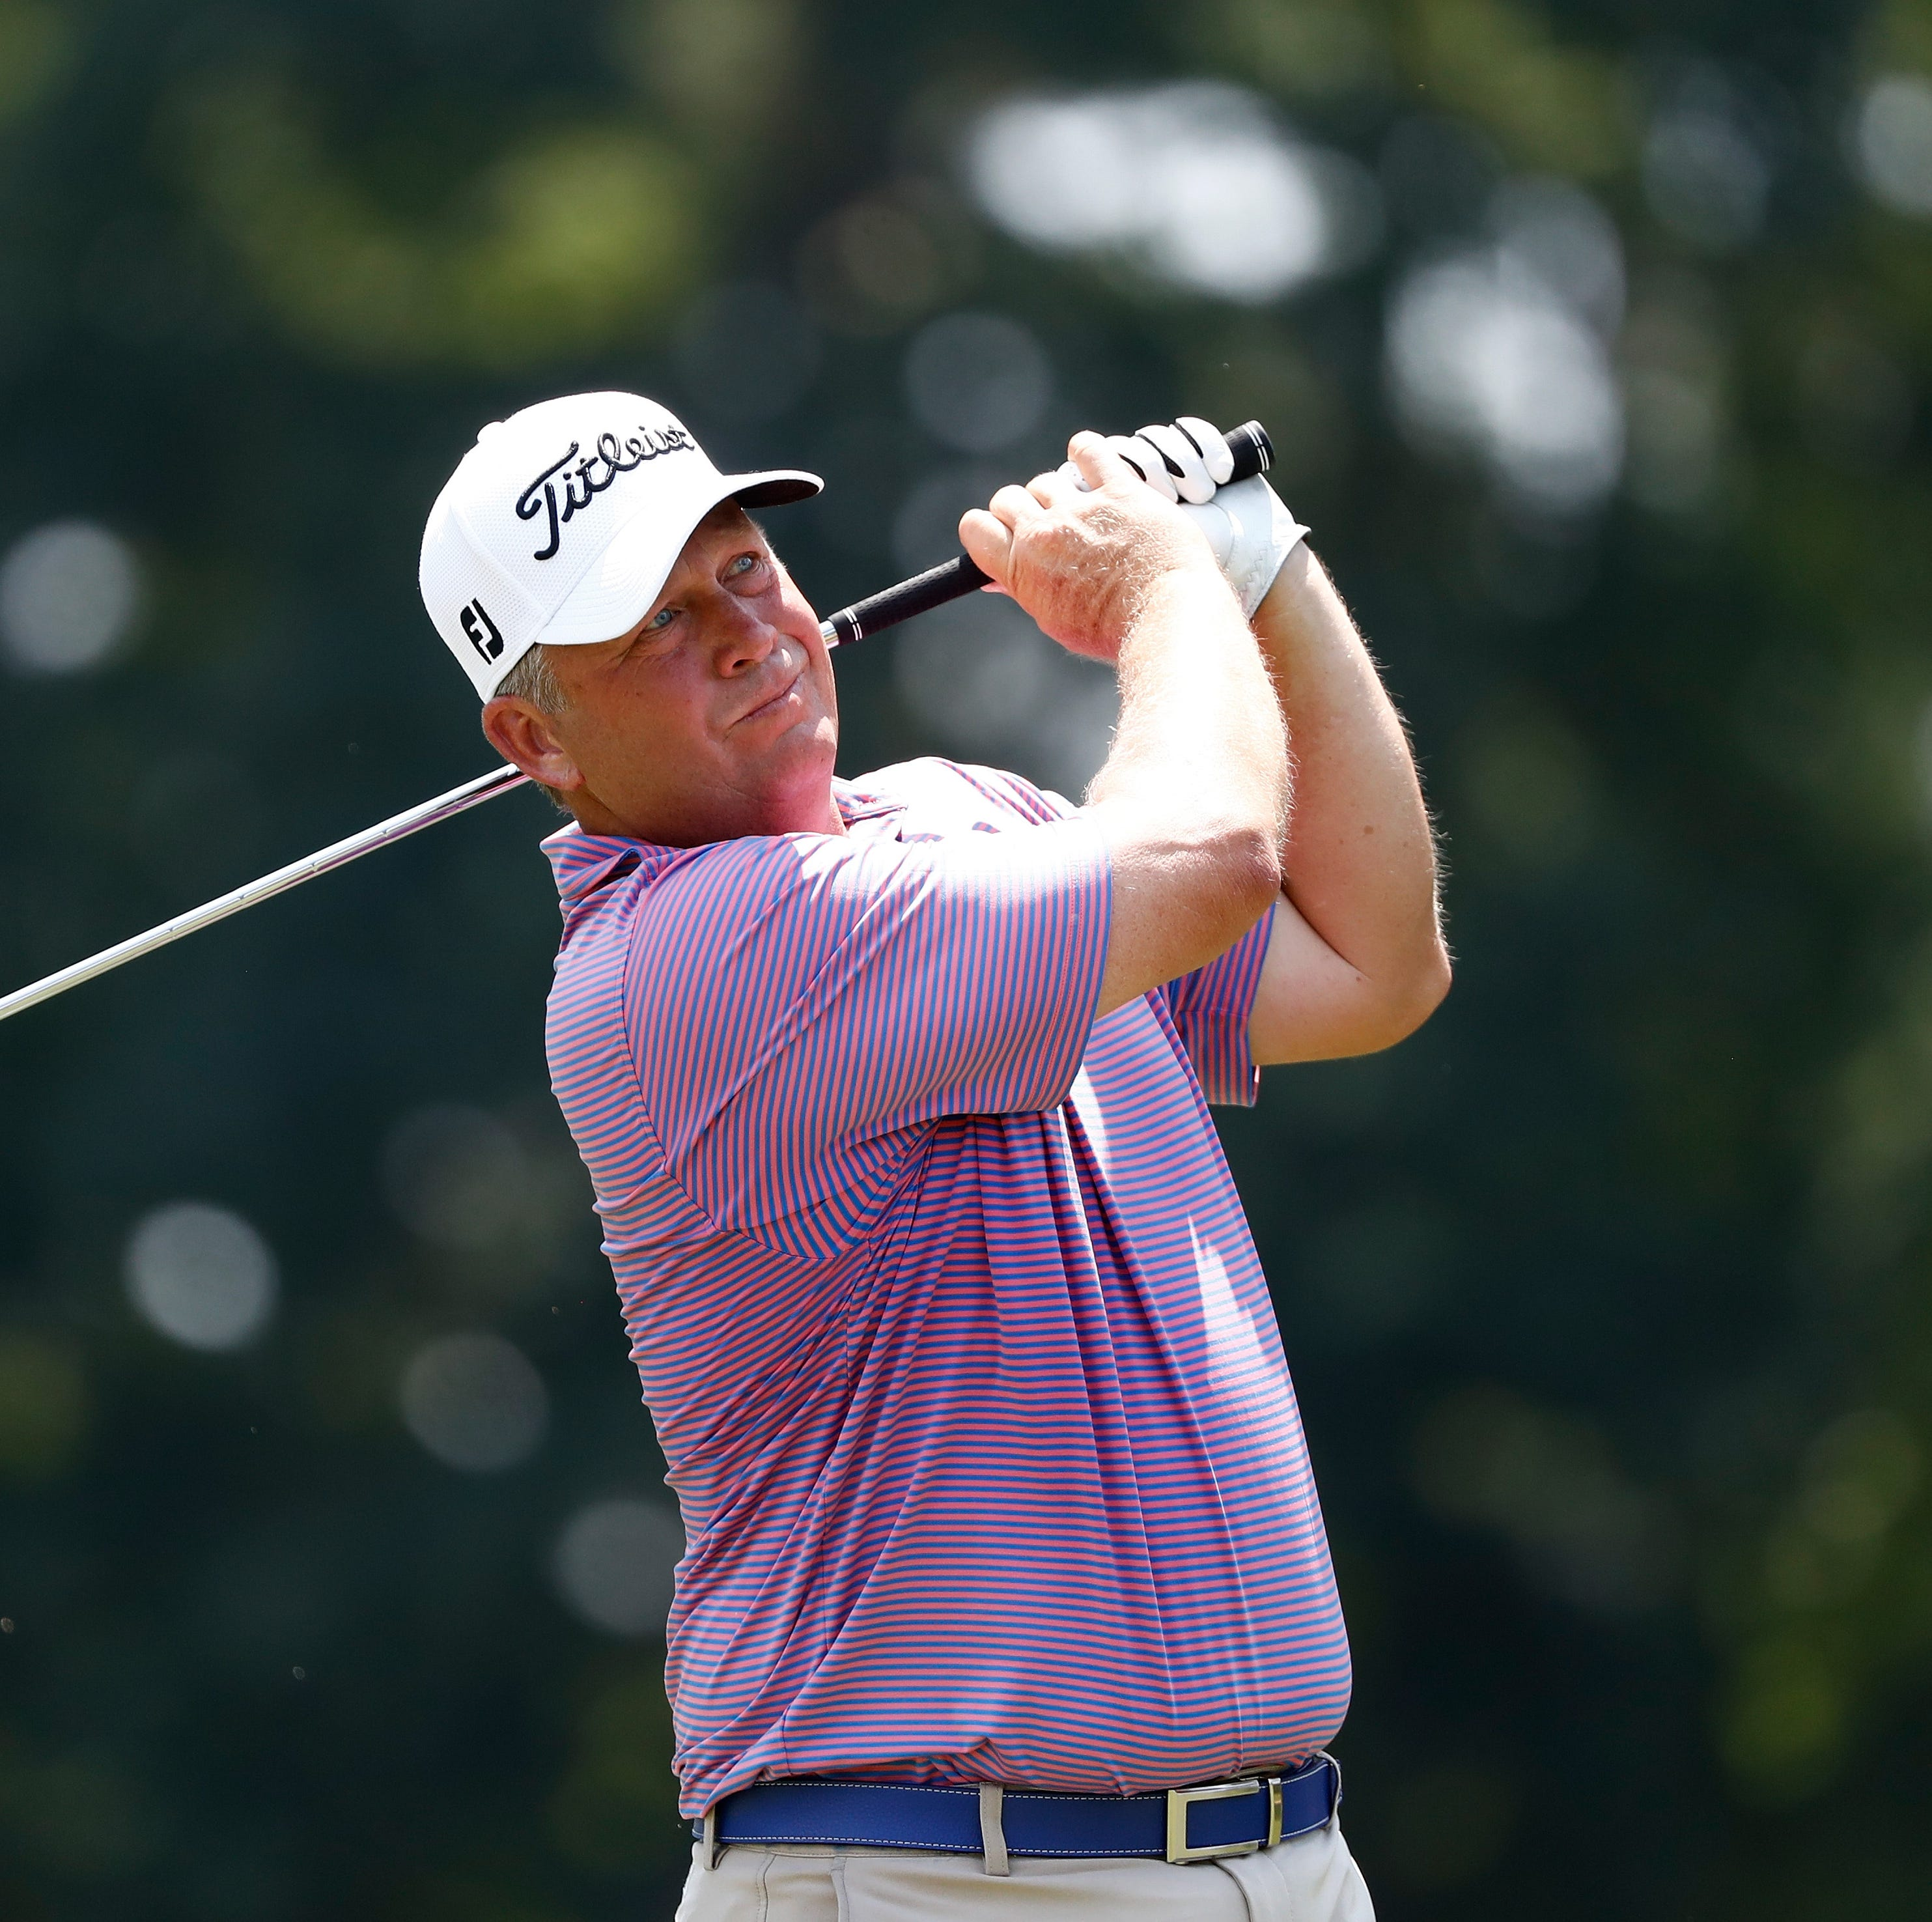 Dudley Hart, native New Yorker, debuts as senior at Dick's Sporting Goods Open